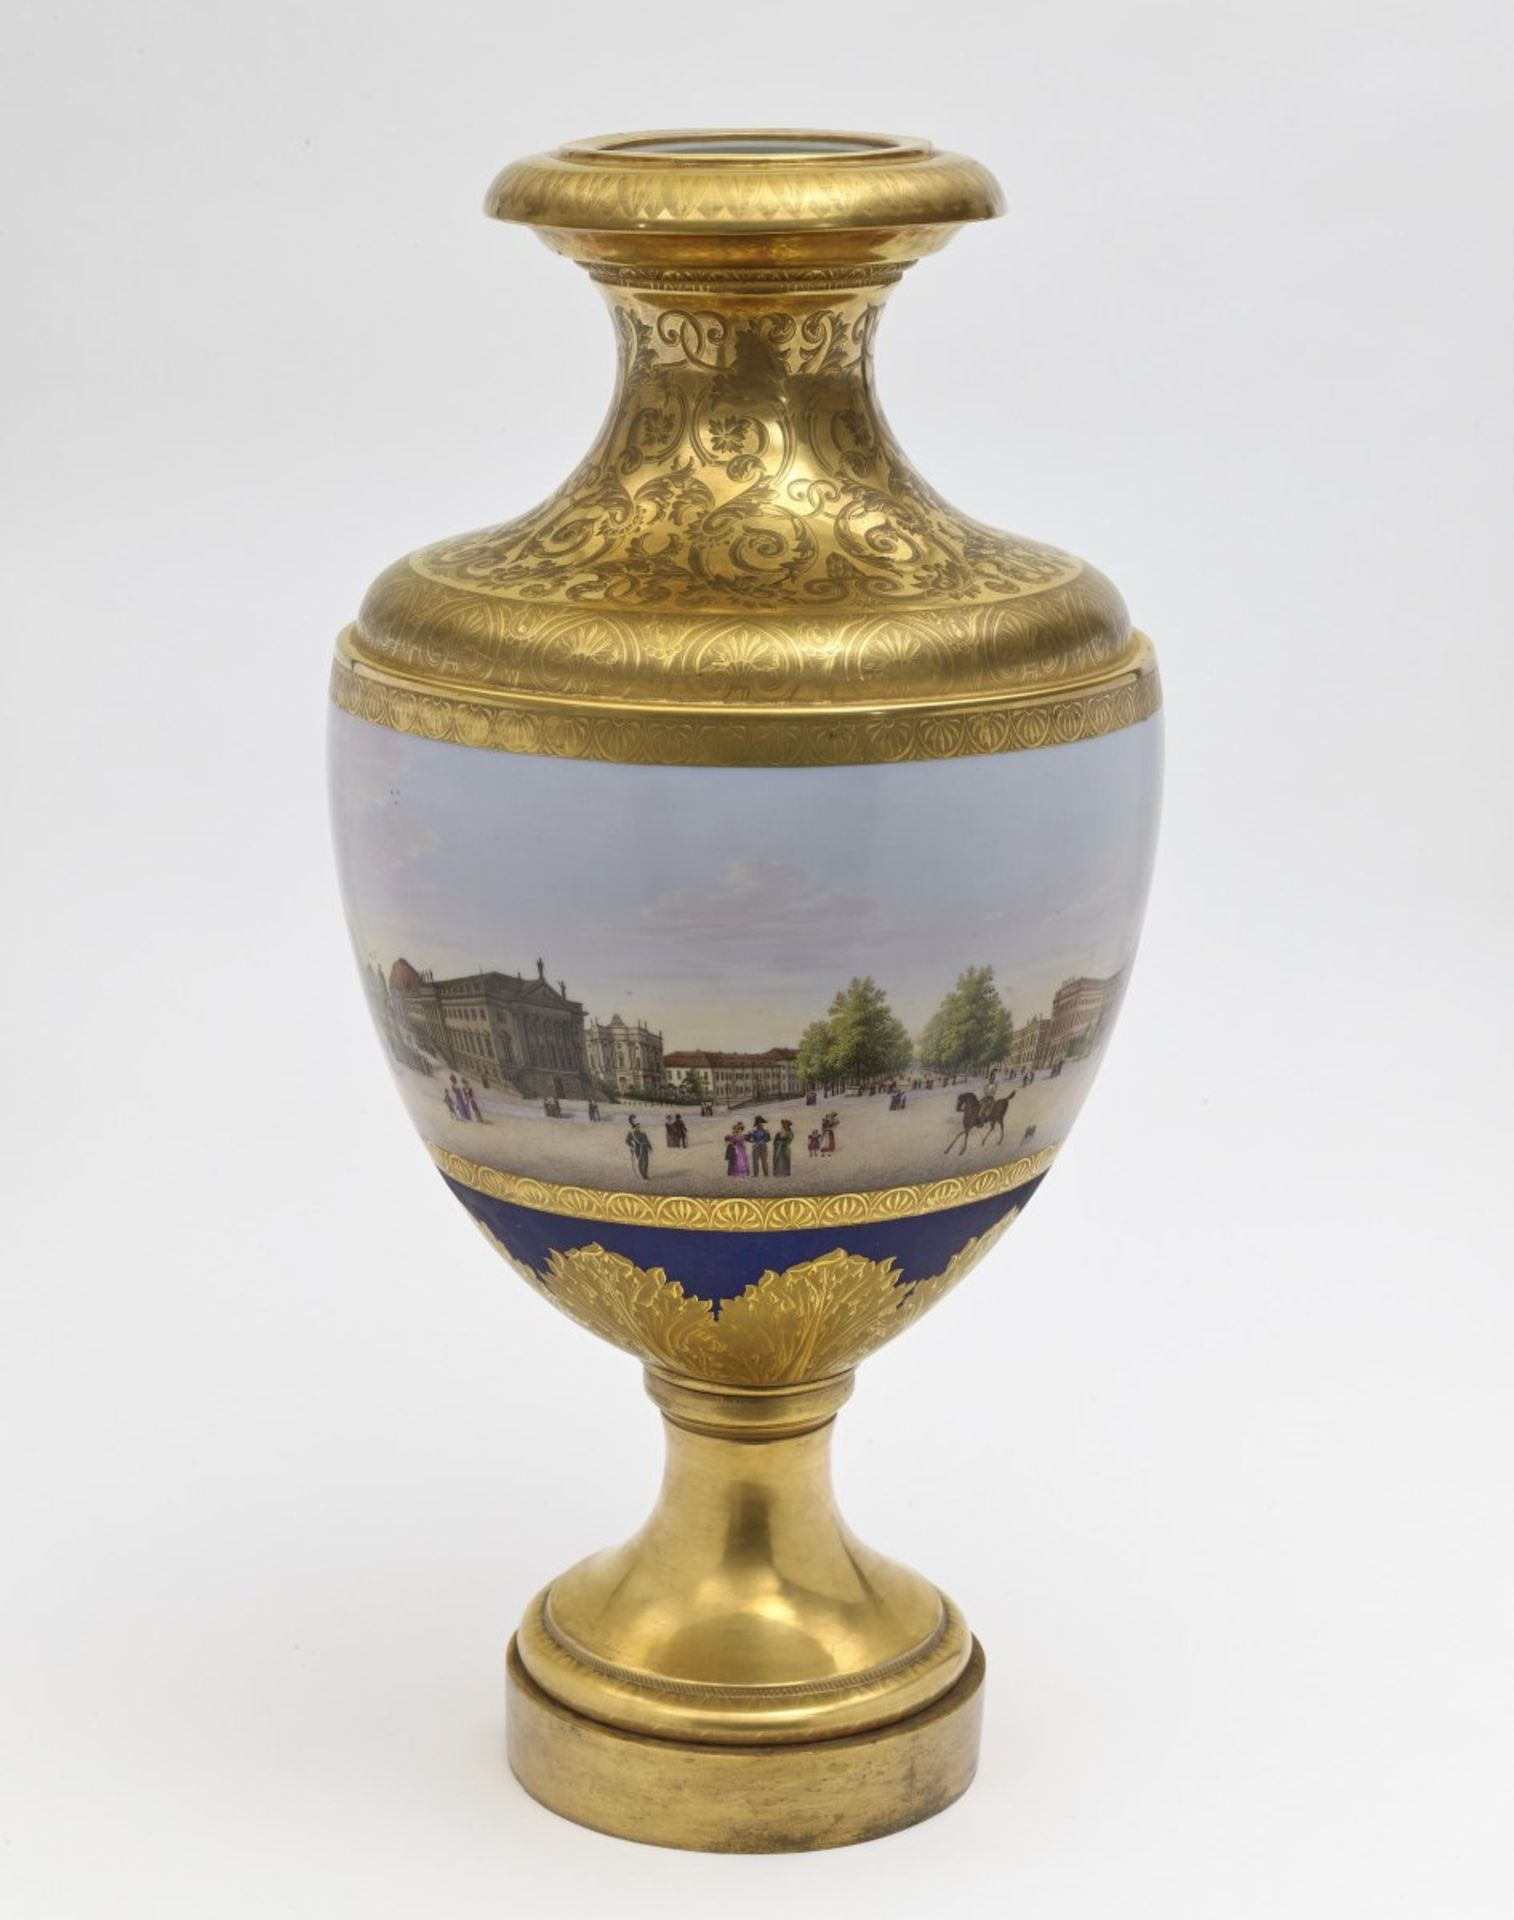 """A panoramic vase with a prospect of the street """"Unter den Linden"""" in Berlin"""